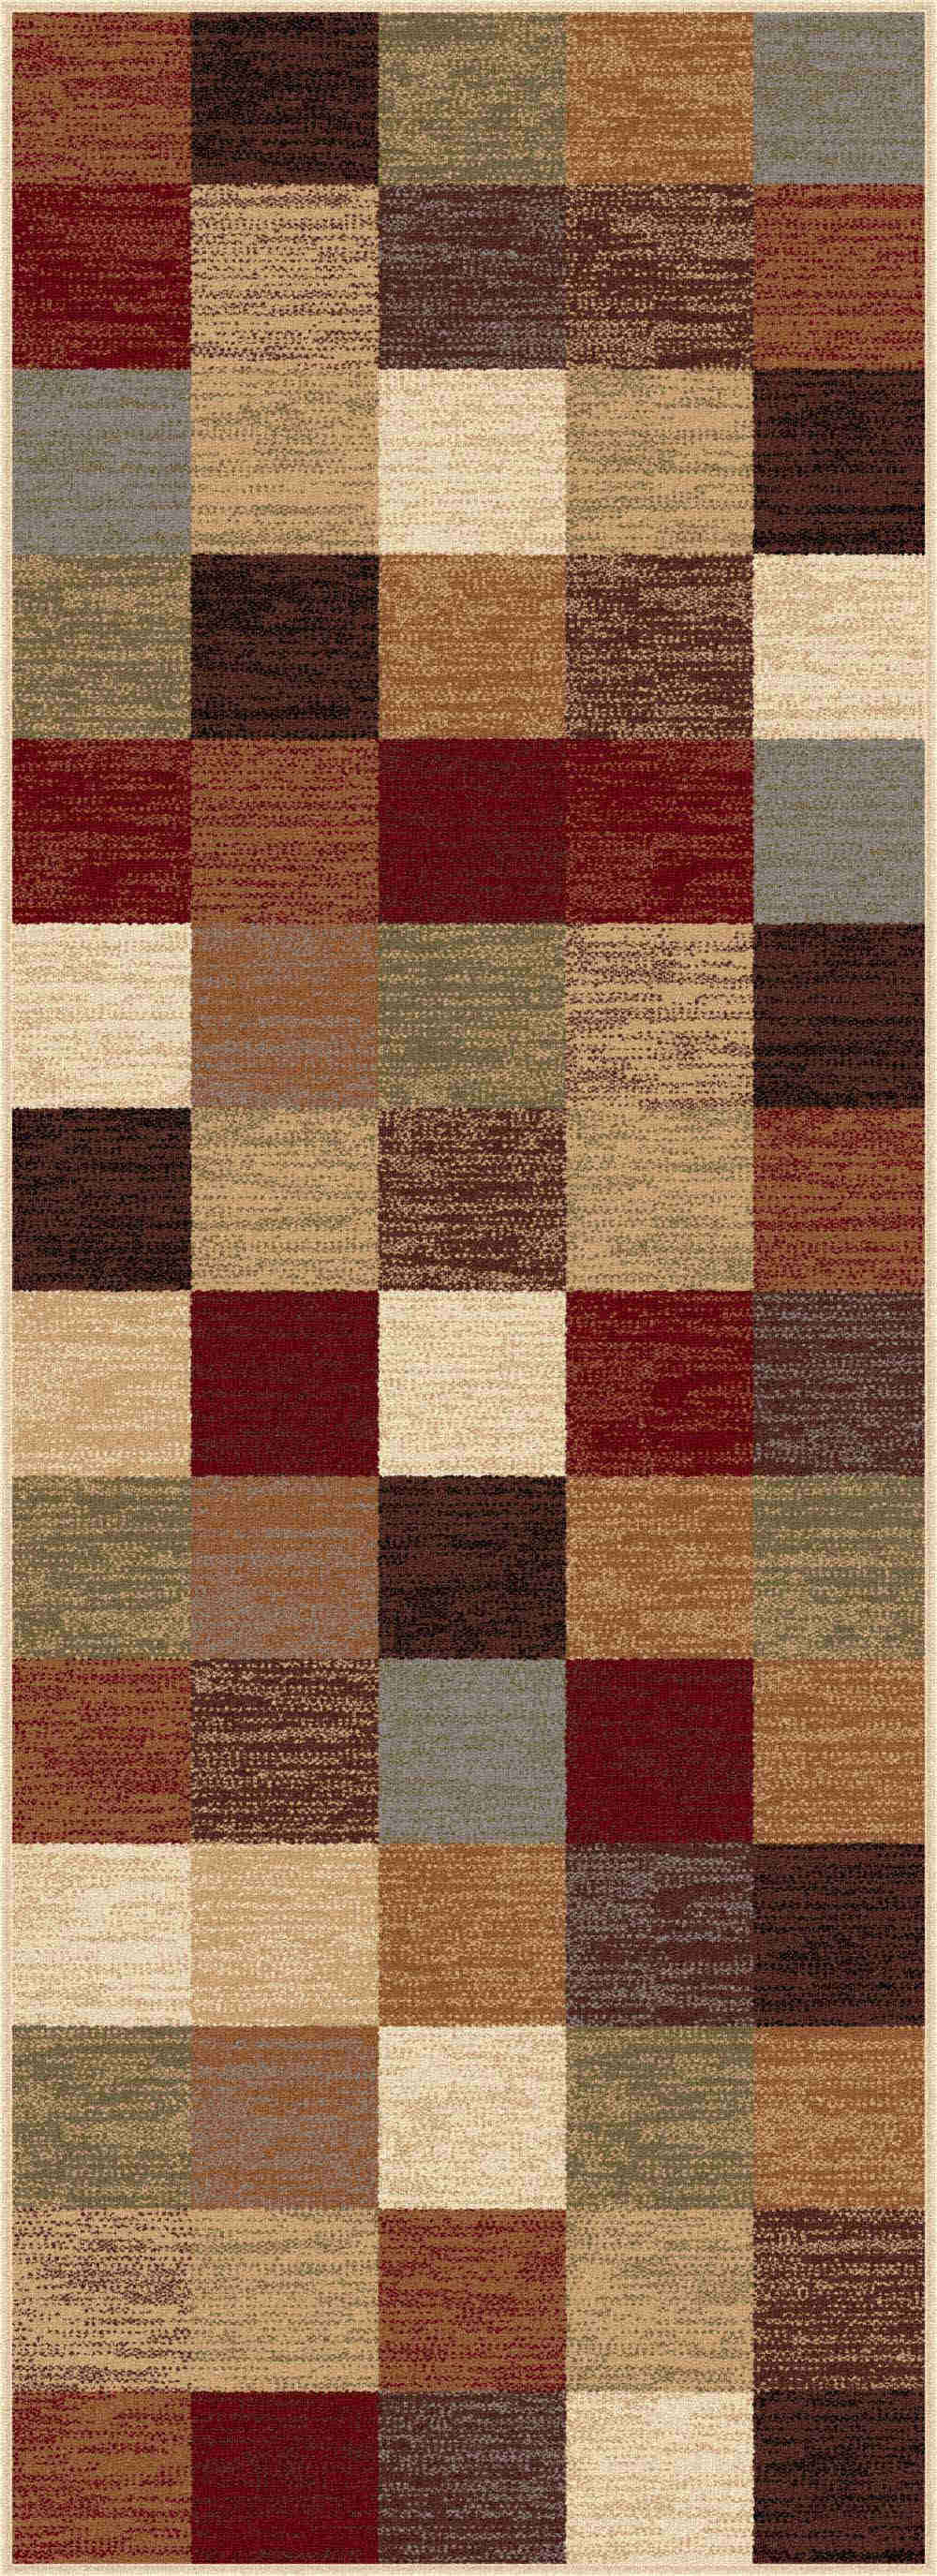 Festival 8710 Multi Contemporary Area Rug